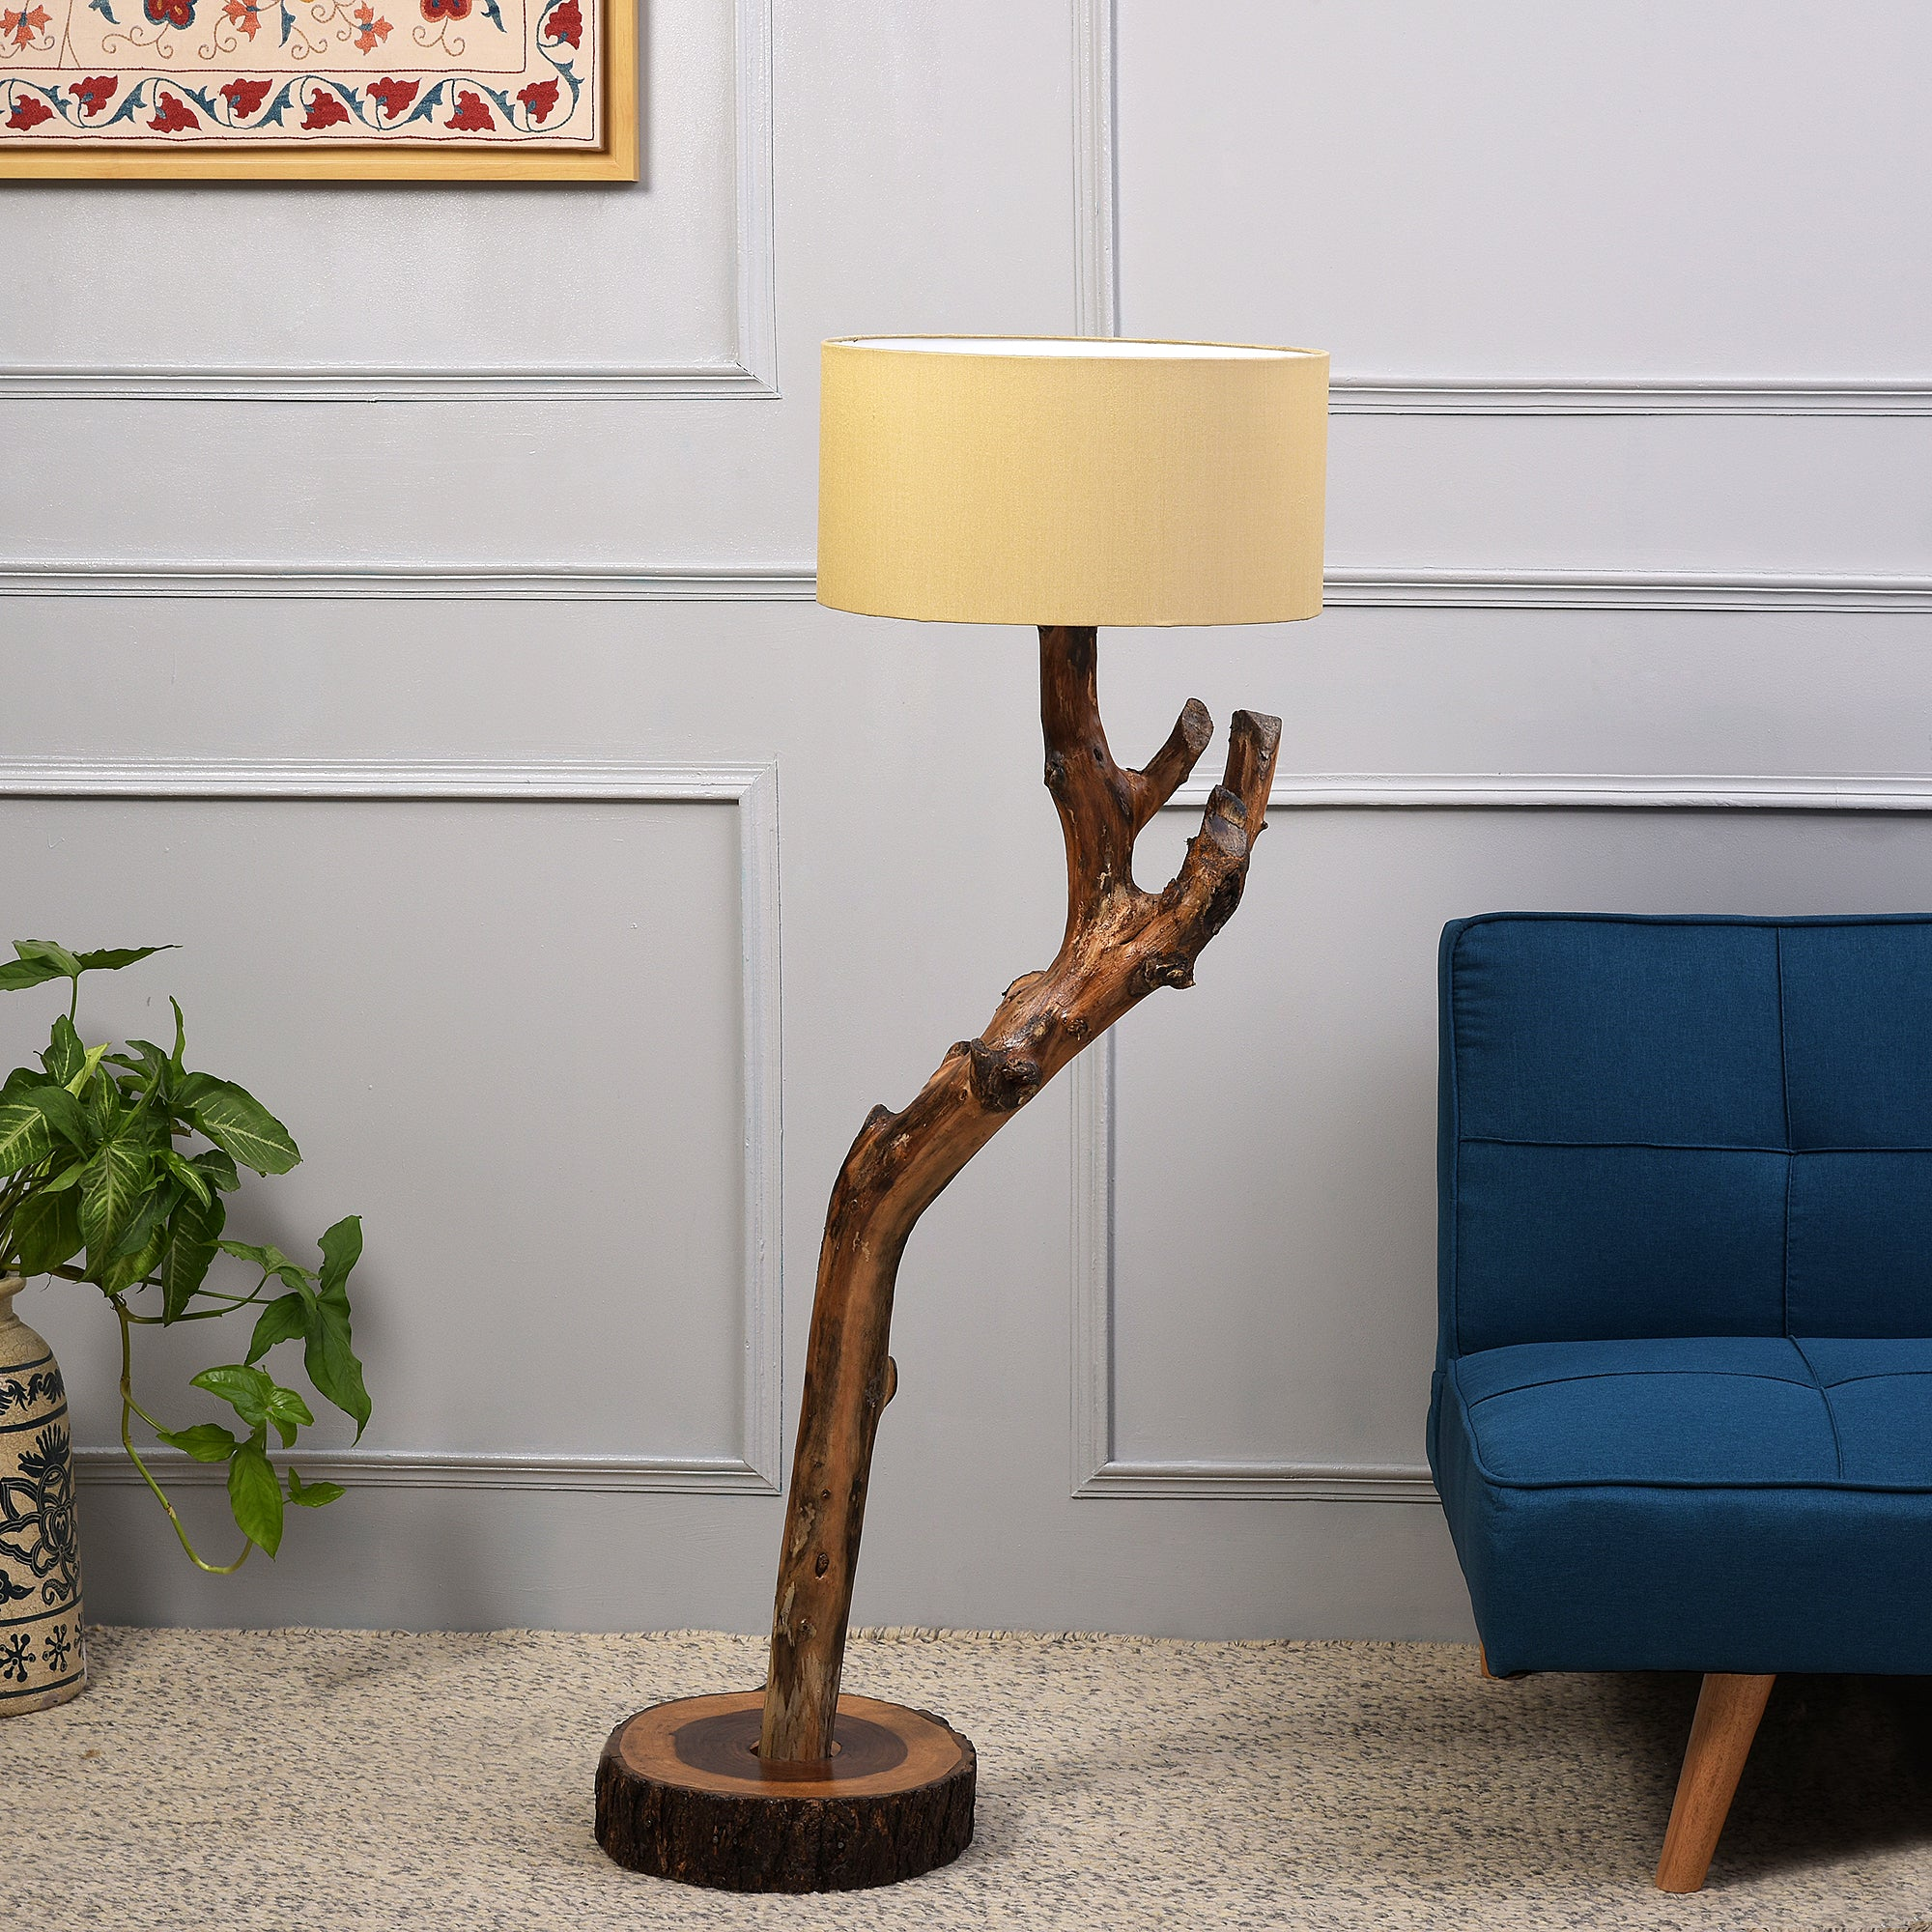 'Deadvlei' Floor Lamp